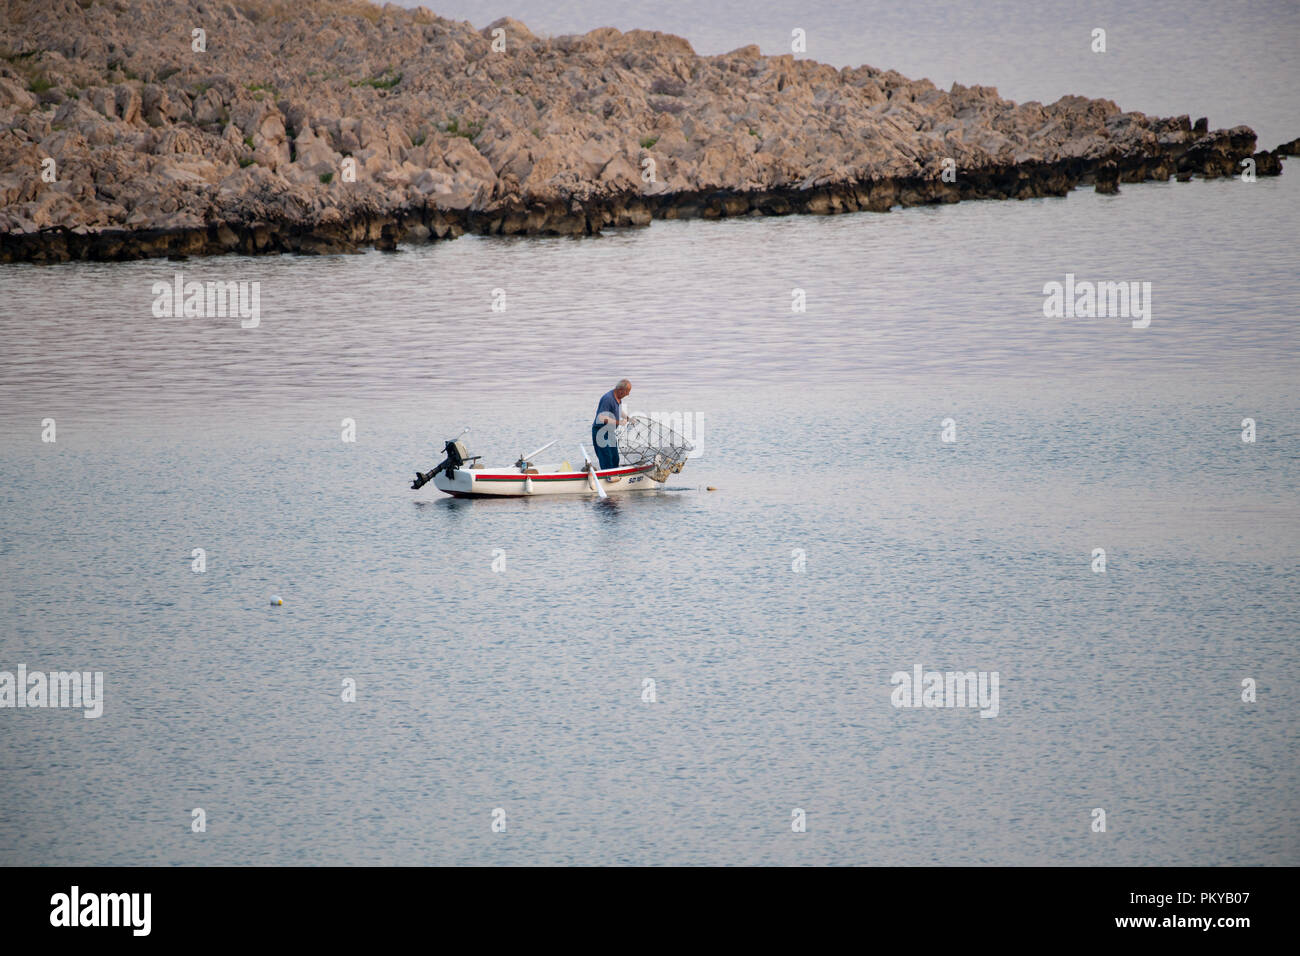 Old traditional fisherman in Croatia on a small wooden boat catching fish with fishing cage, pod Stock Photo